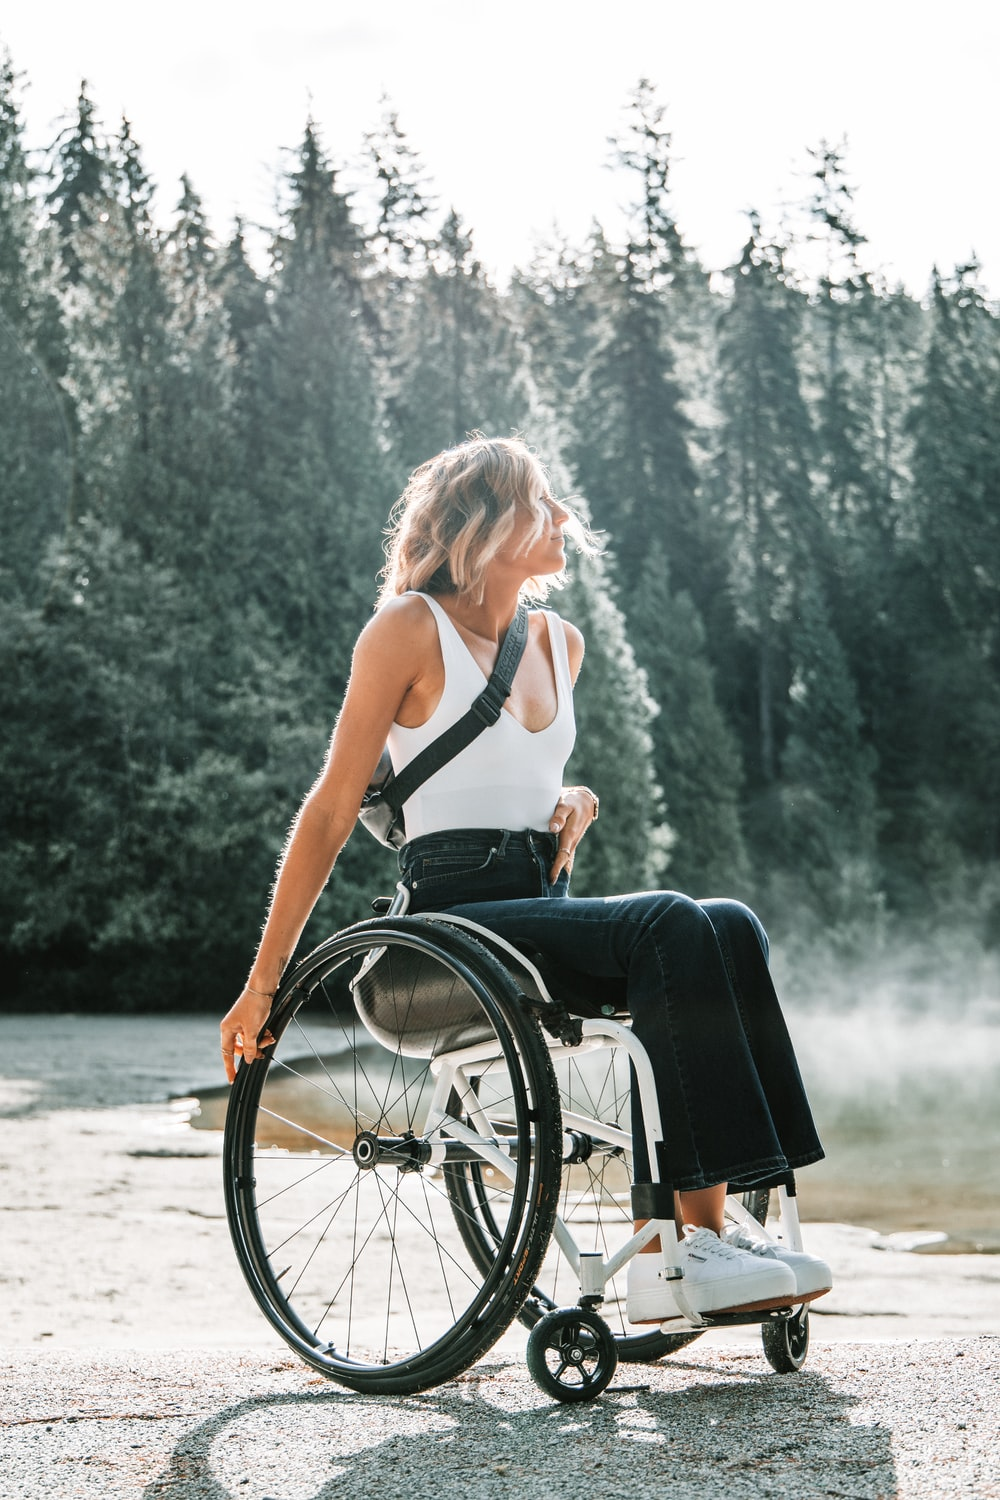 Wheelchair Pictures | Download Free Images on Unsplash